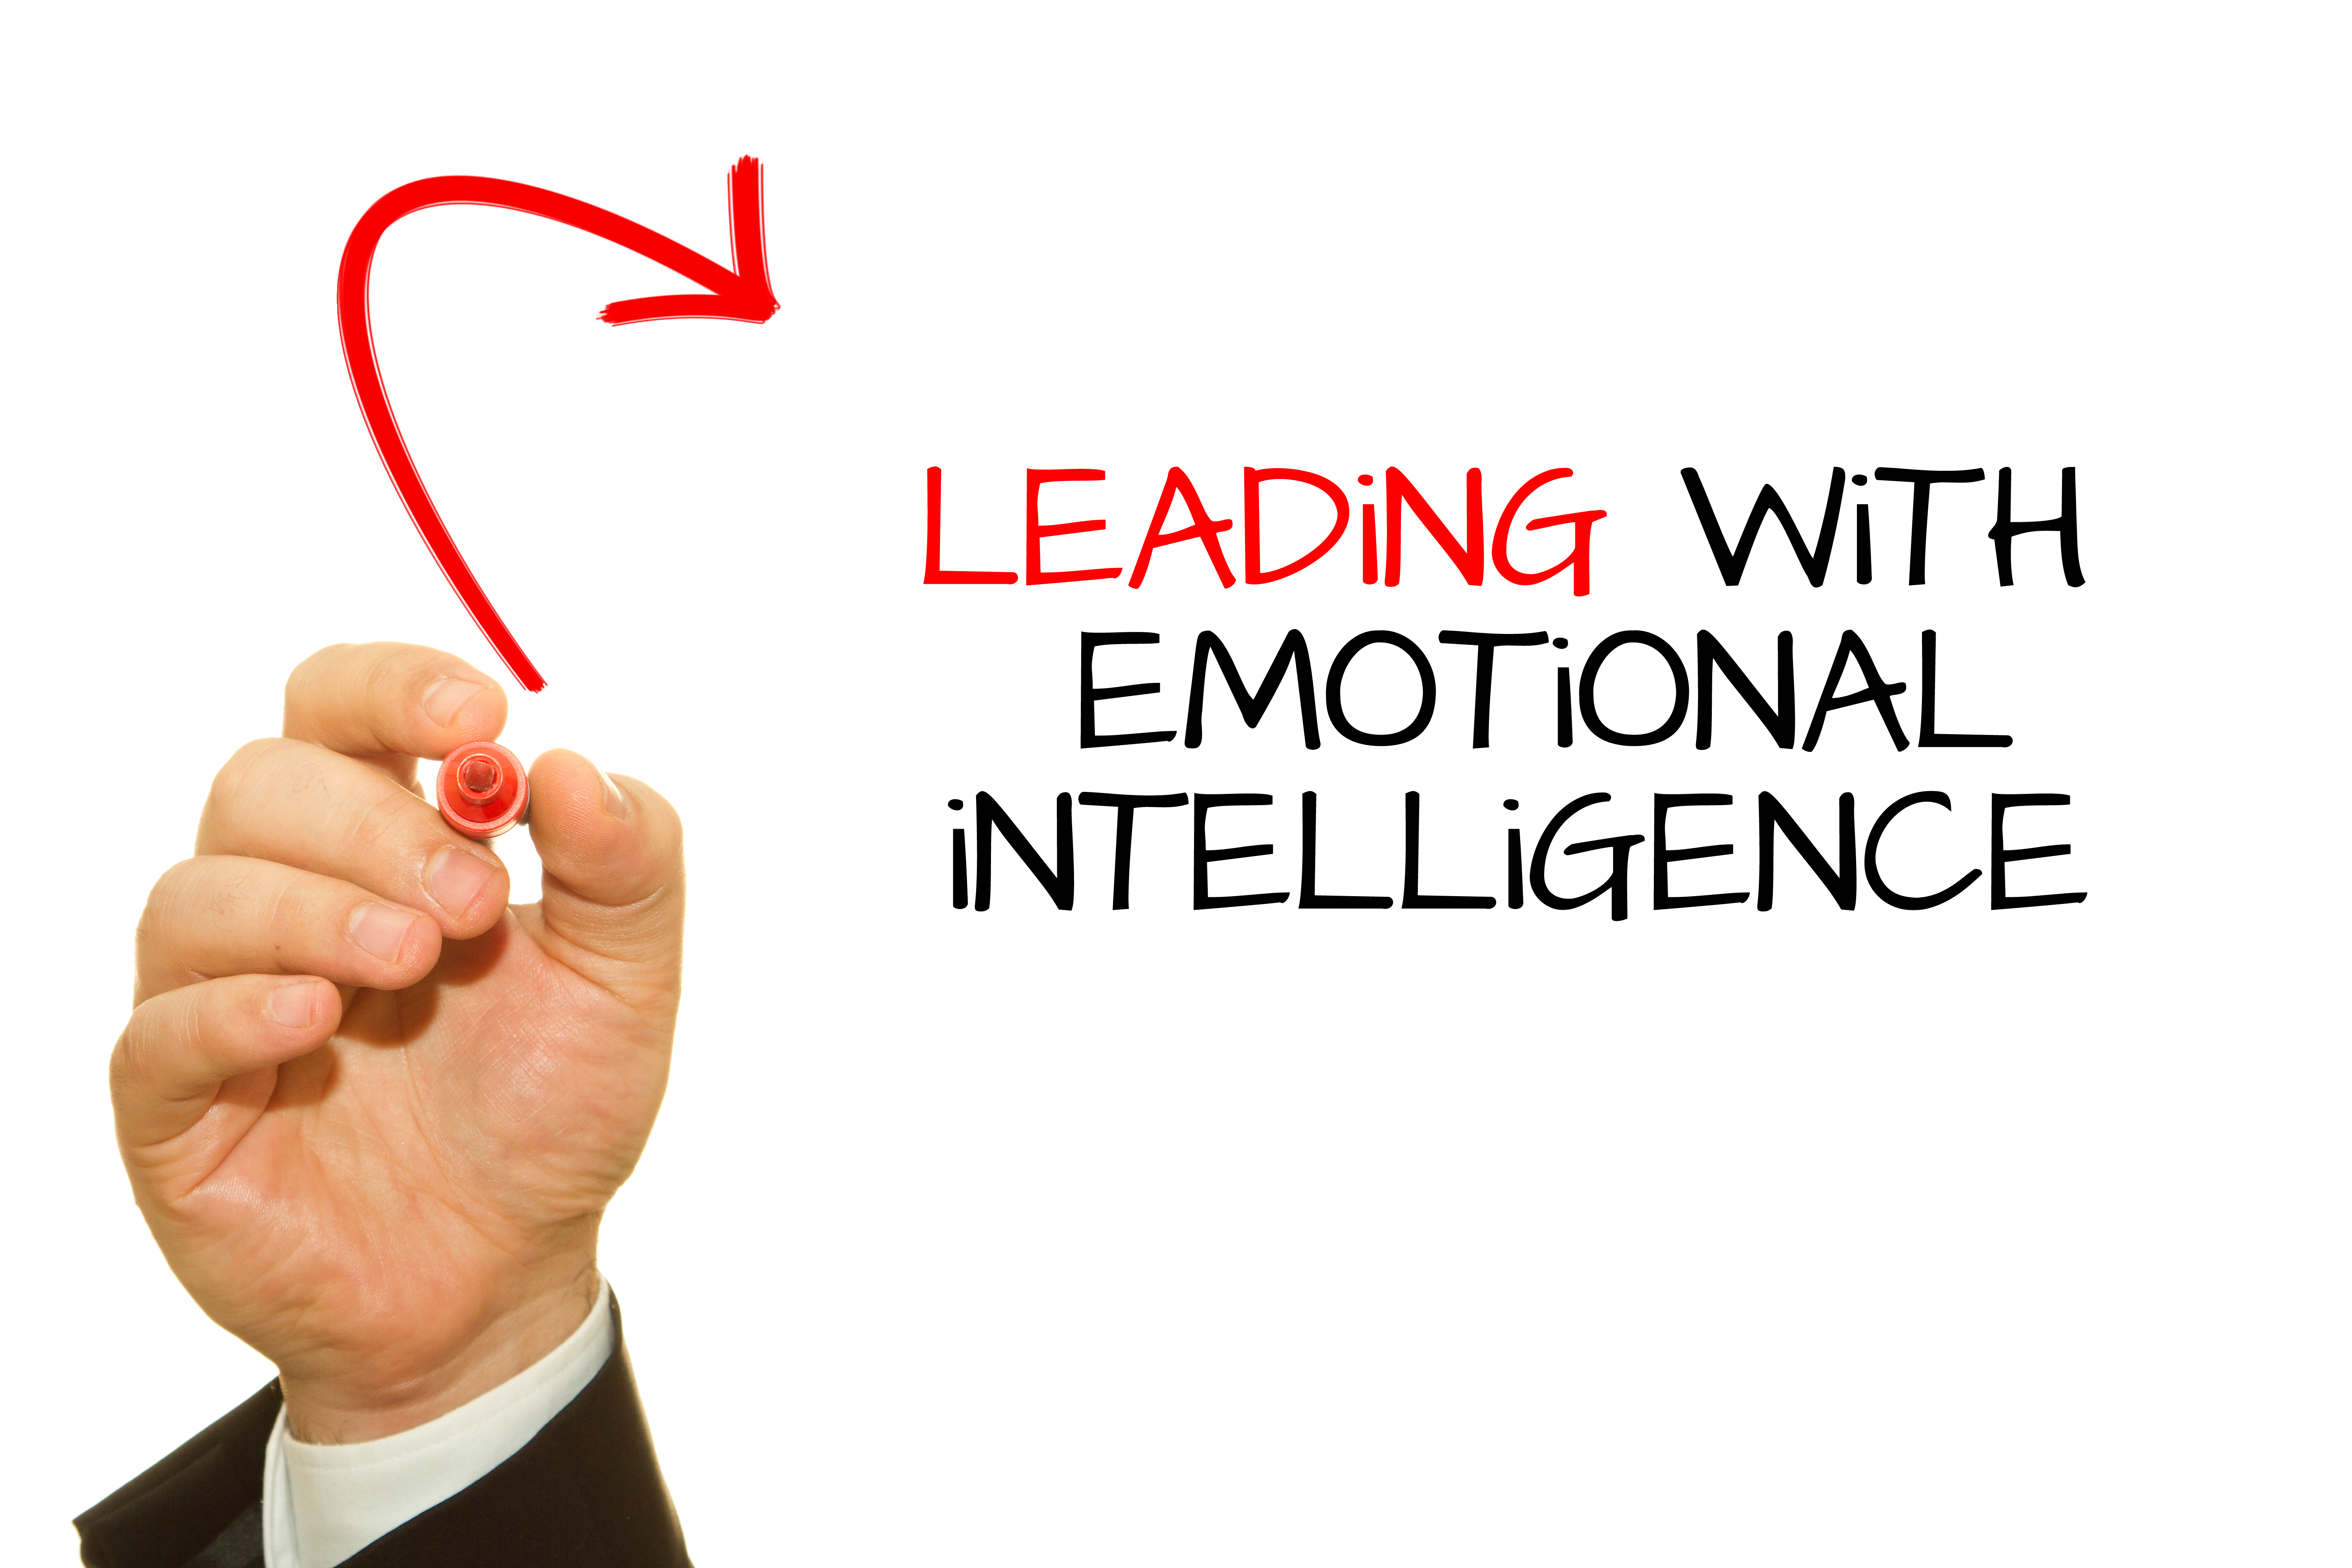 How embracing your emotions can lead you to success in life and business